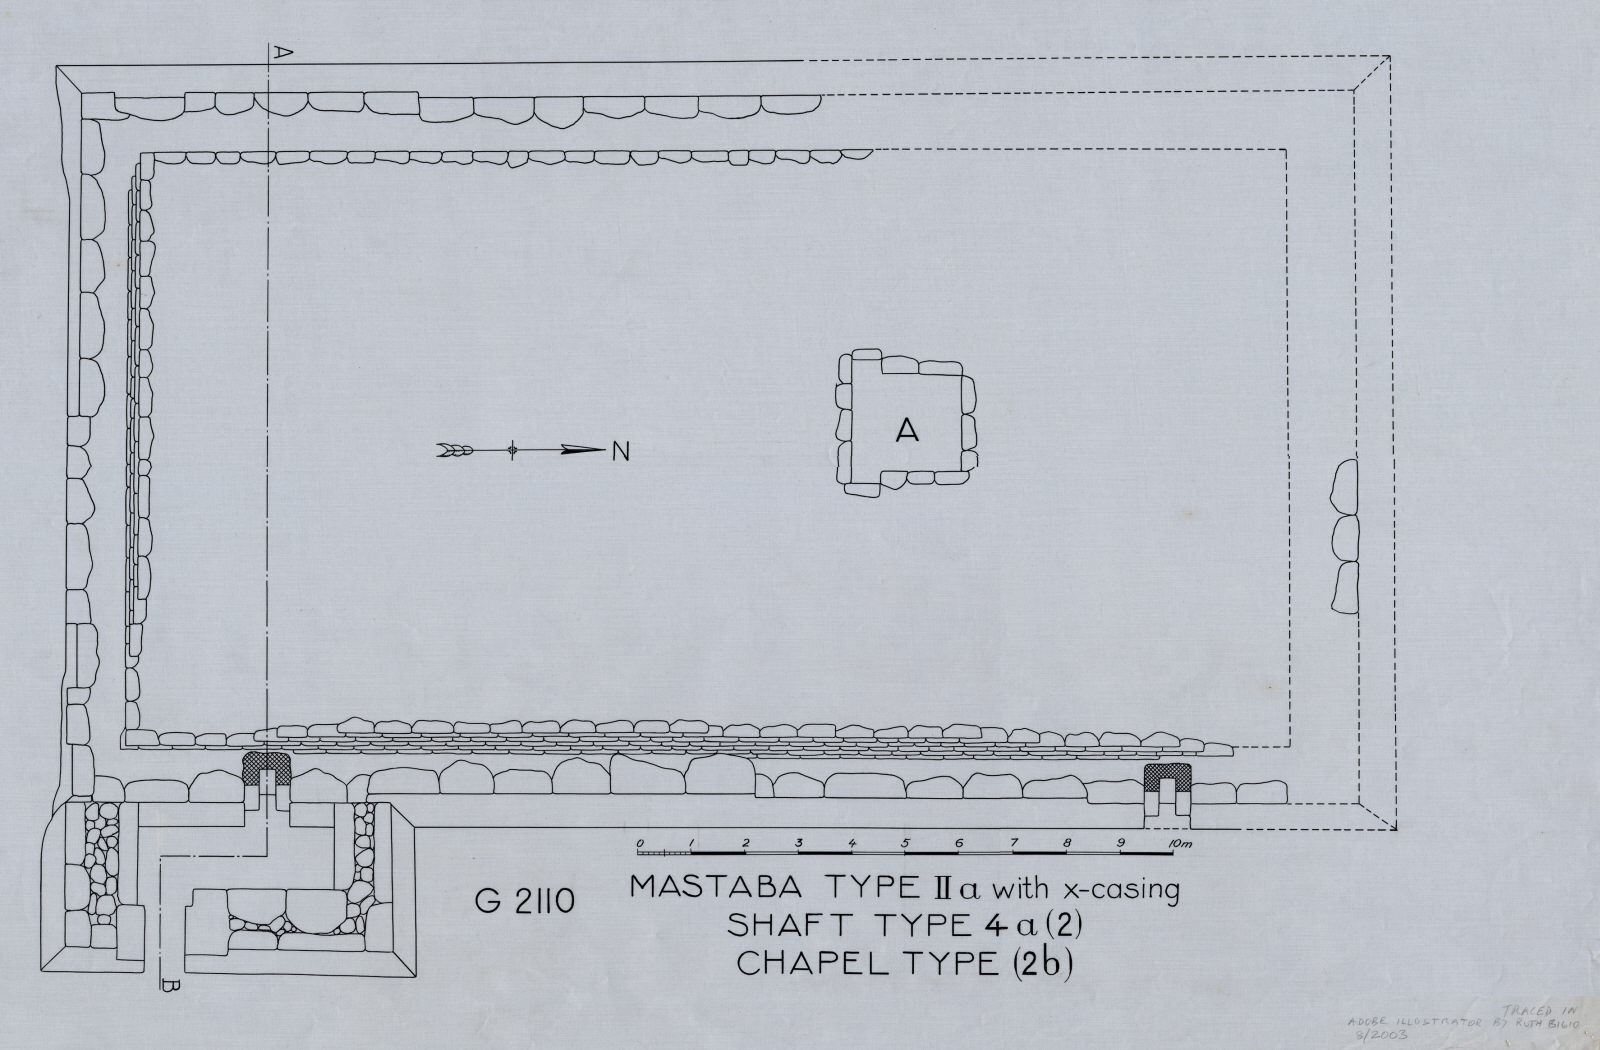 Maps and plans: G 2110, Plan